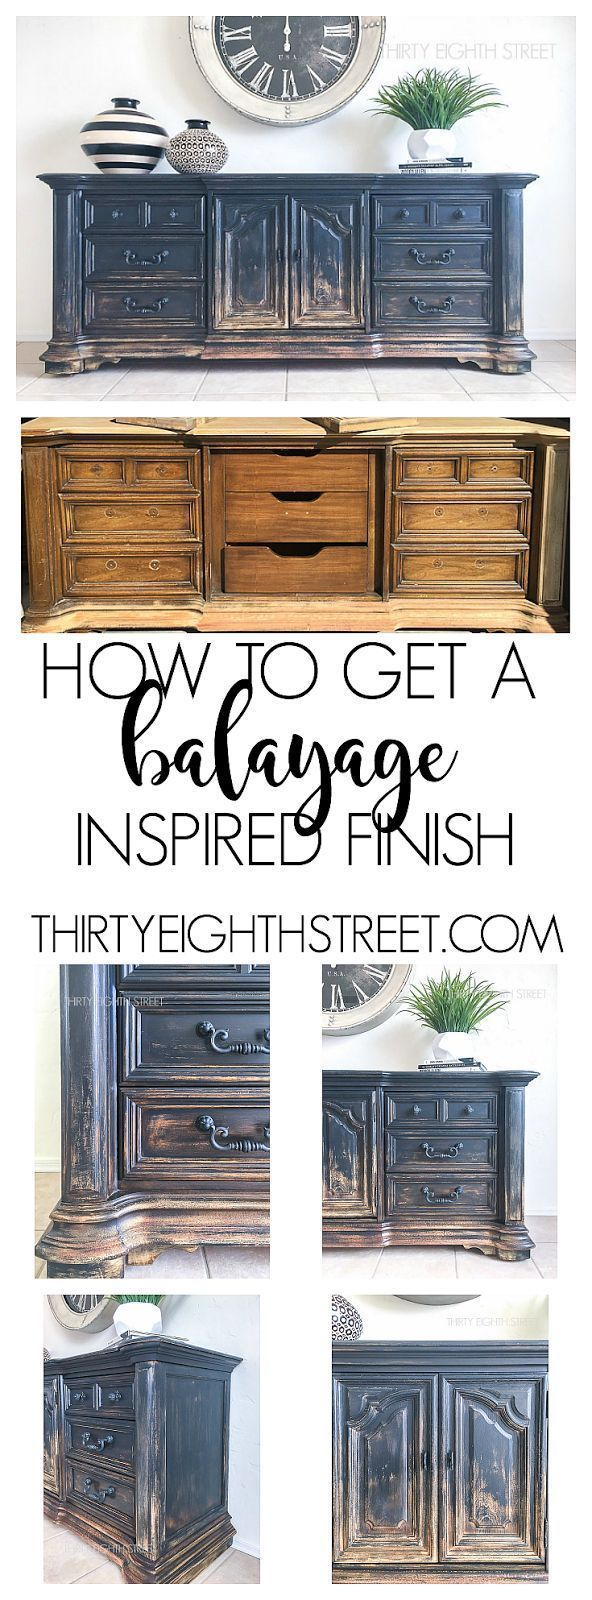 Balayage Coloring on Furniture by Thirty Eighth Street. Painting Technique designed to give your furniture a rustic farmhouse finish! #farmhouse